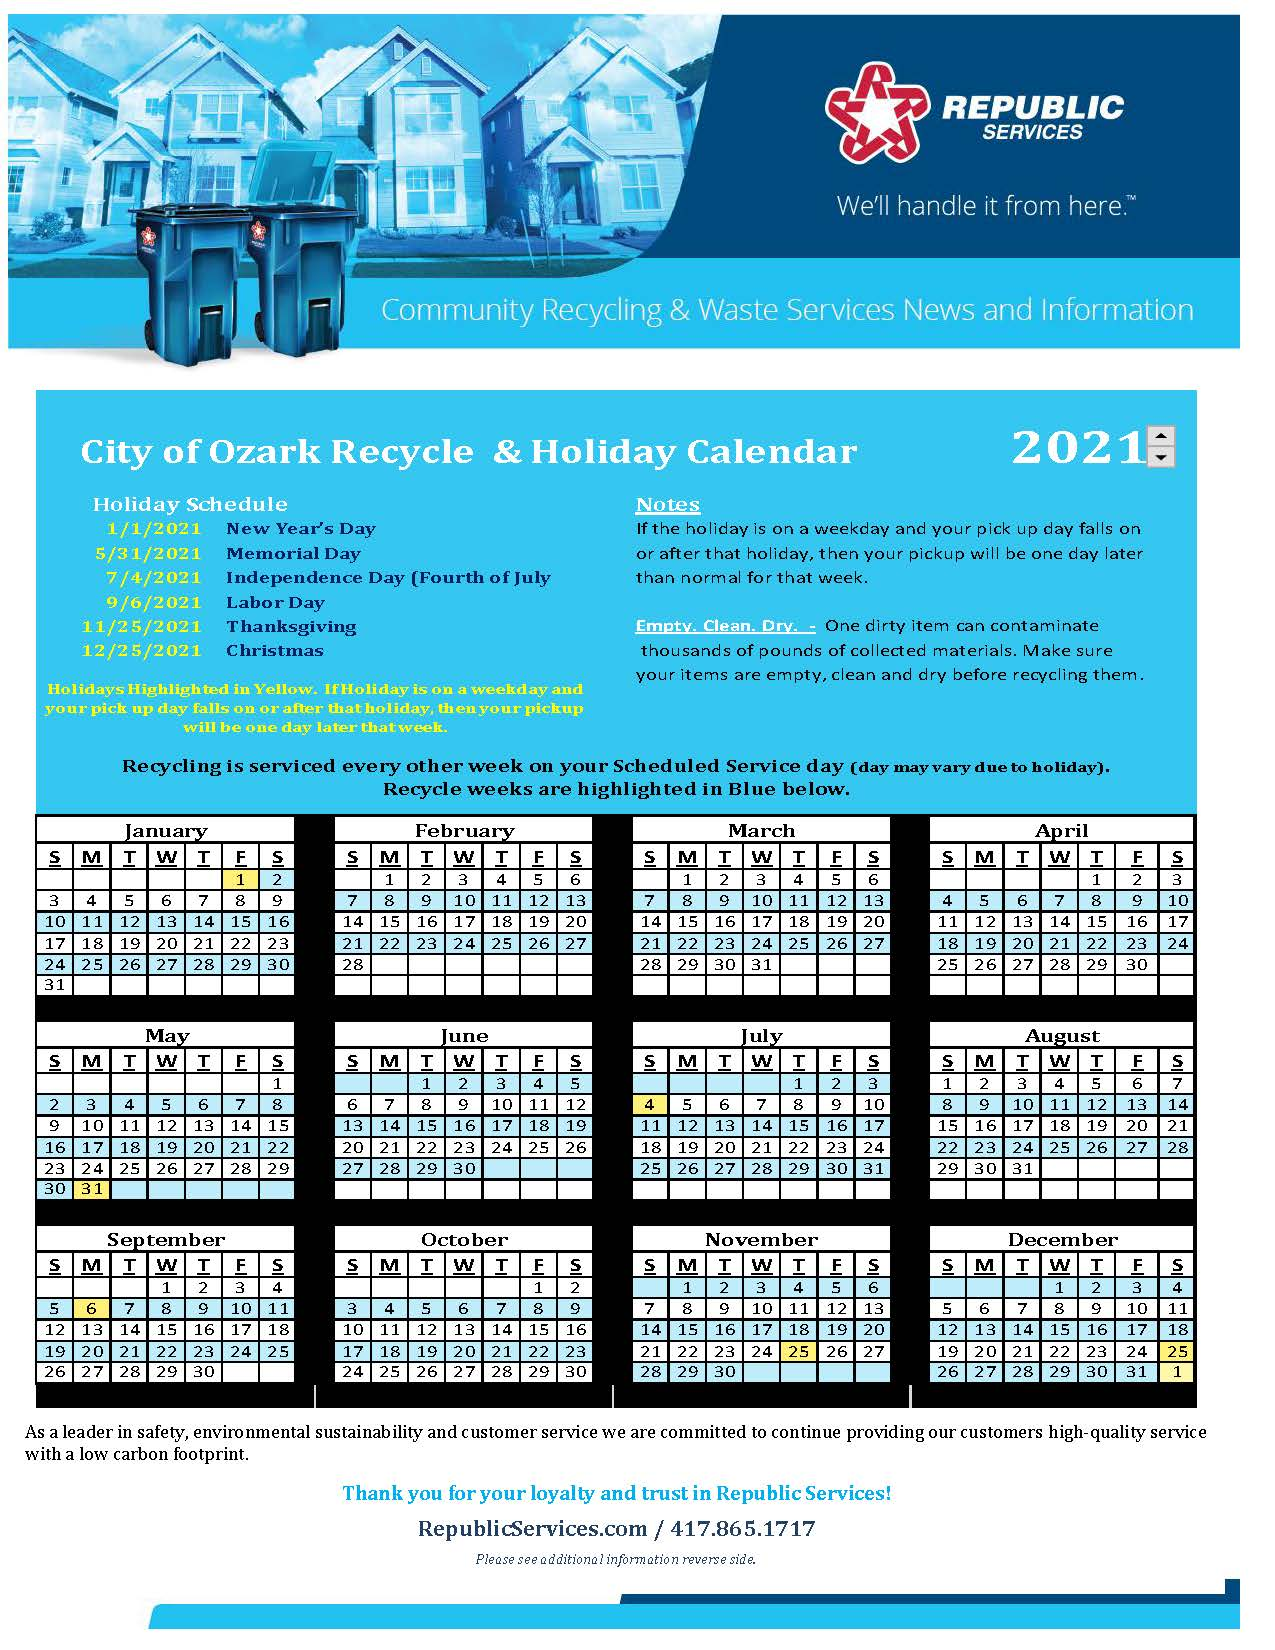 City of Ozark Recycle Calendar 2021_Page_1